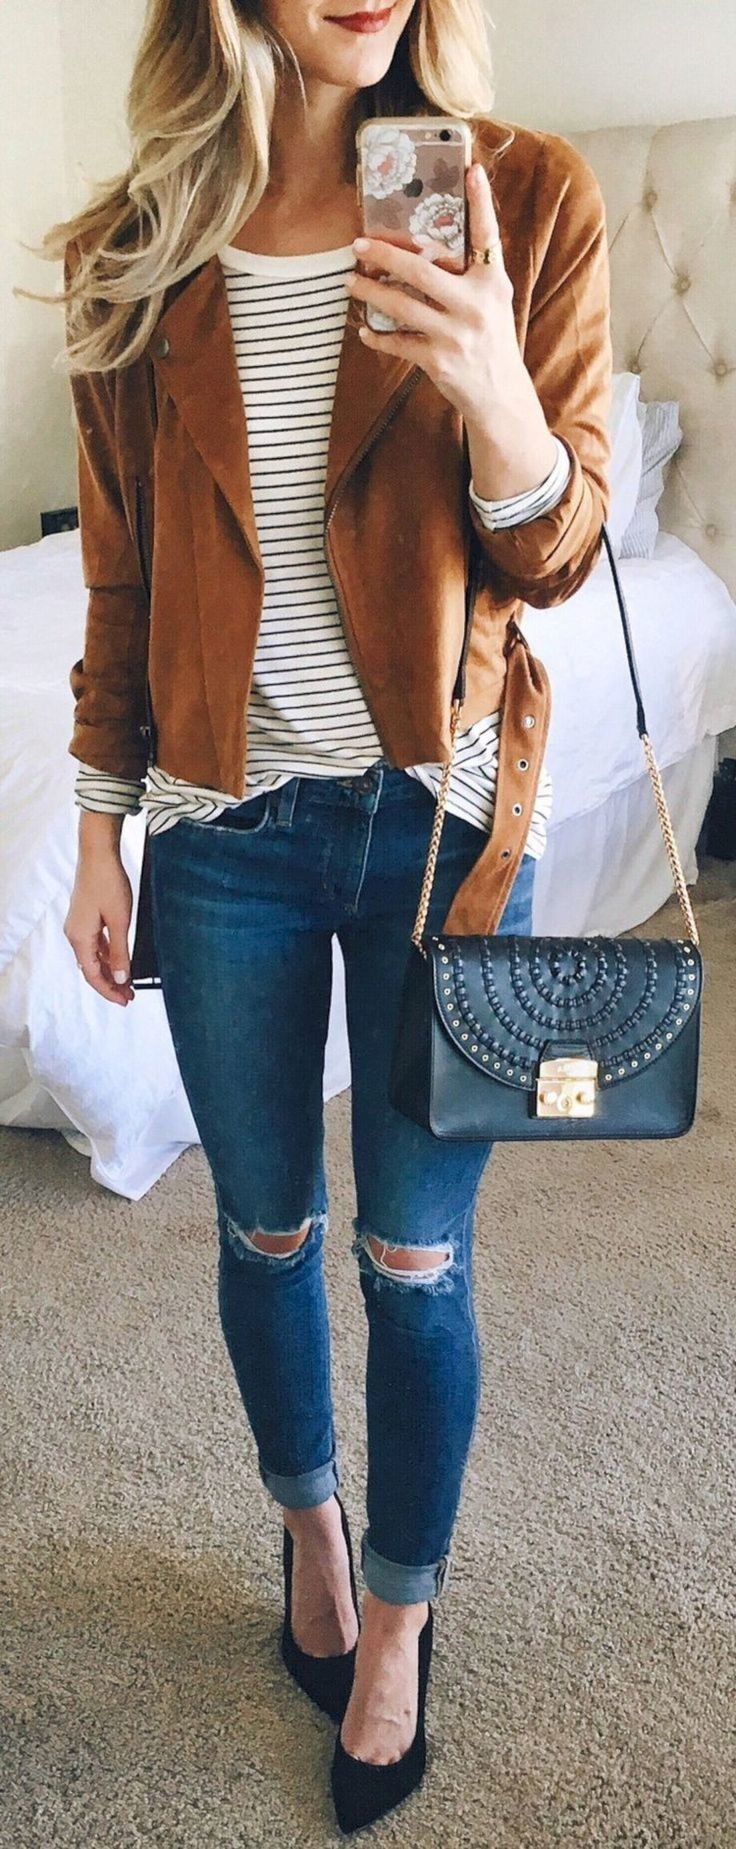 #fall #outfits women's white striped long-sleeved shirt, brown blazer, distress jeans and heeled shoes outfit